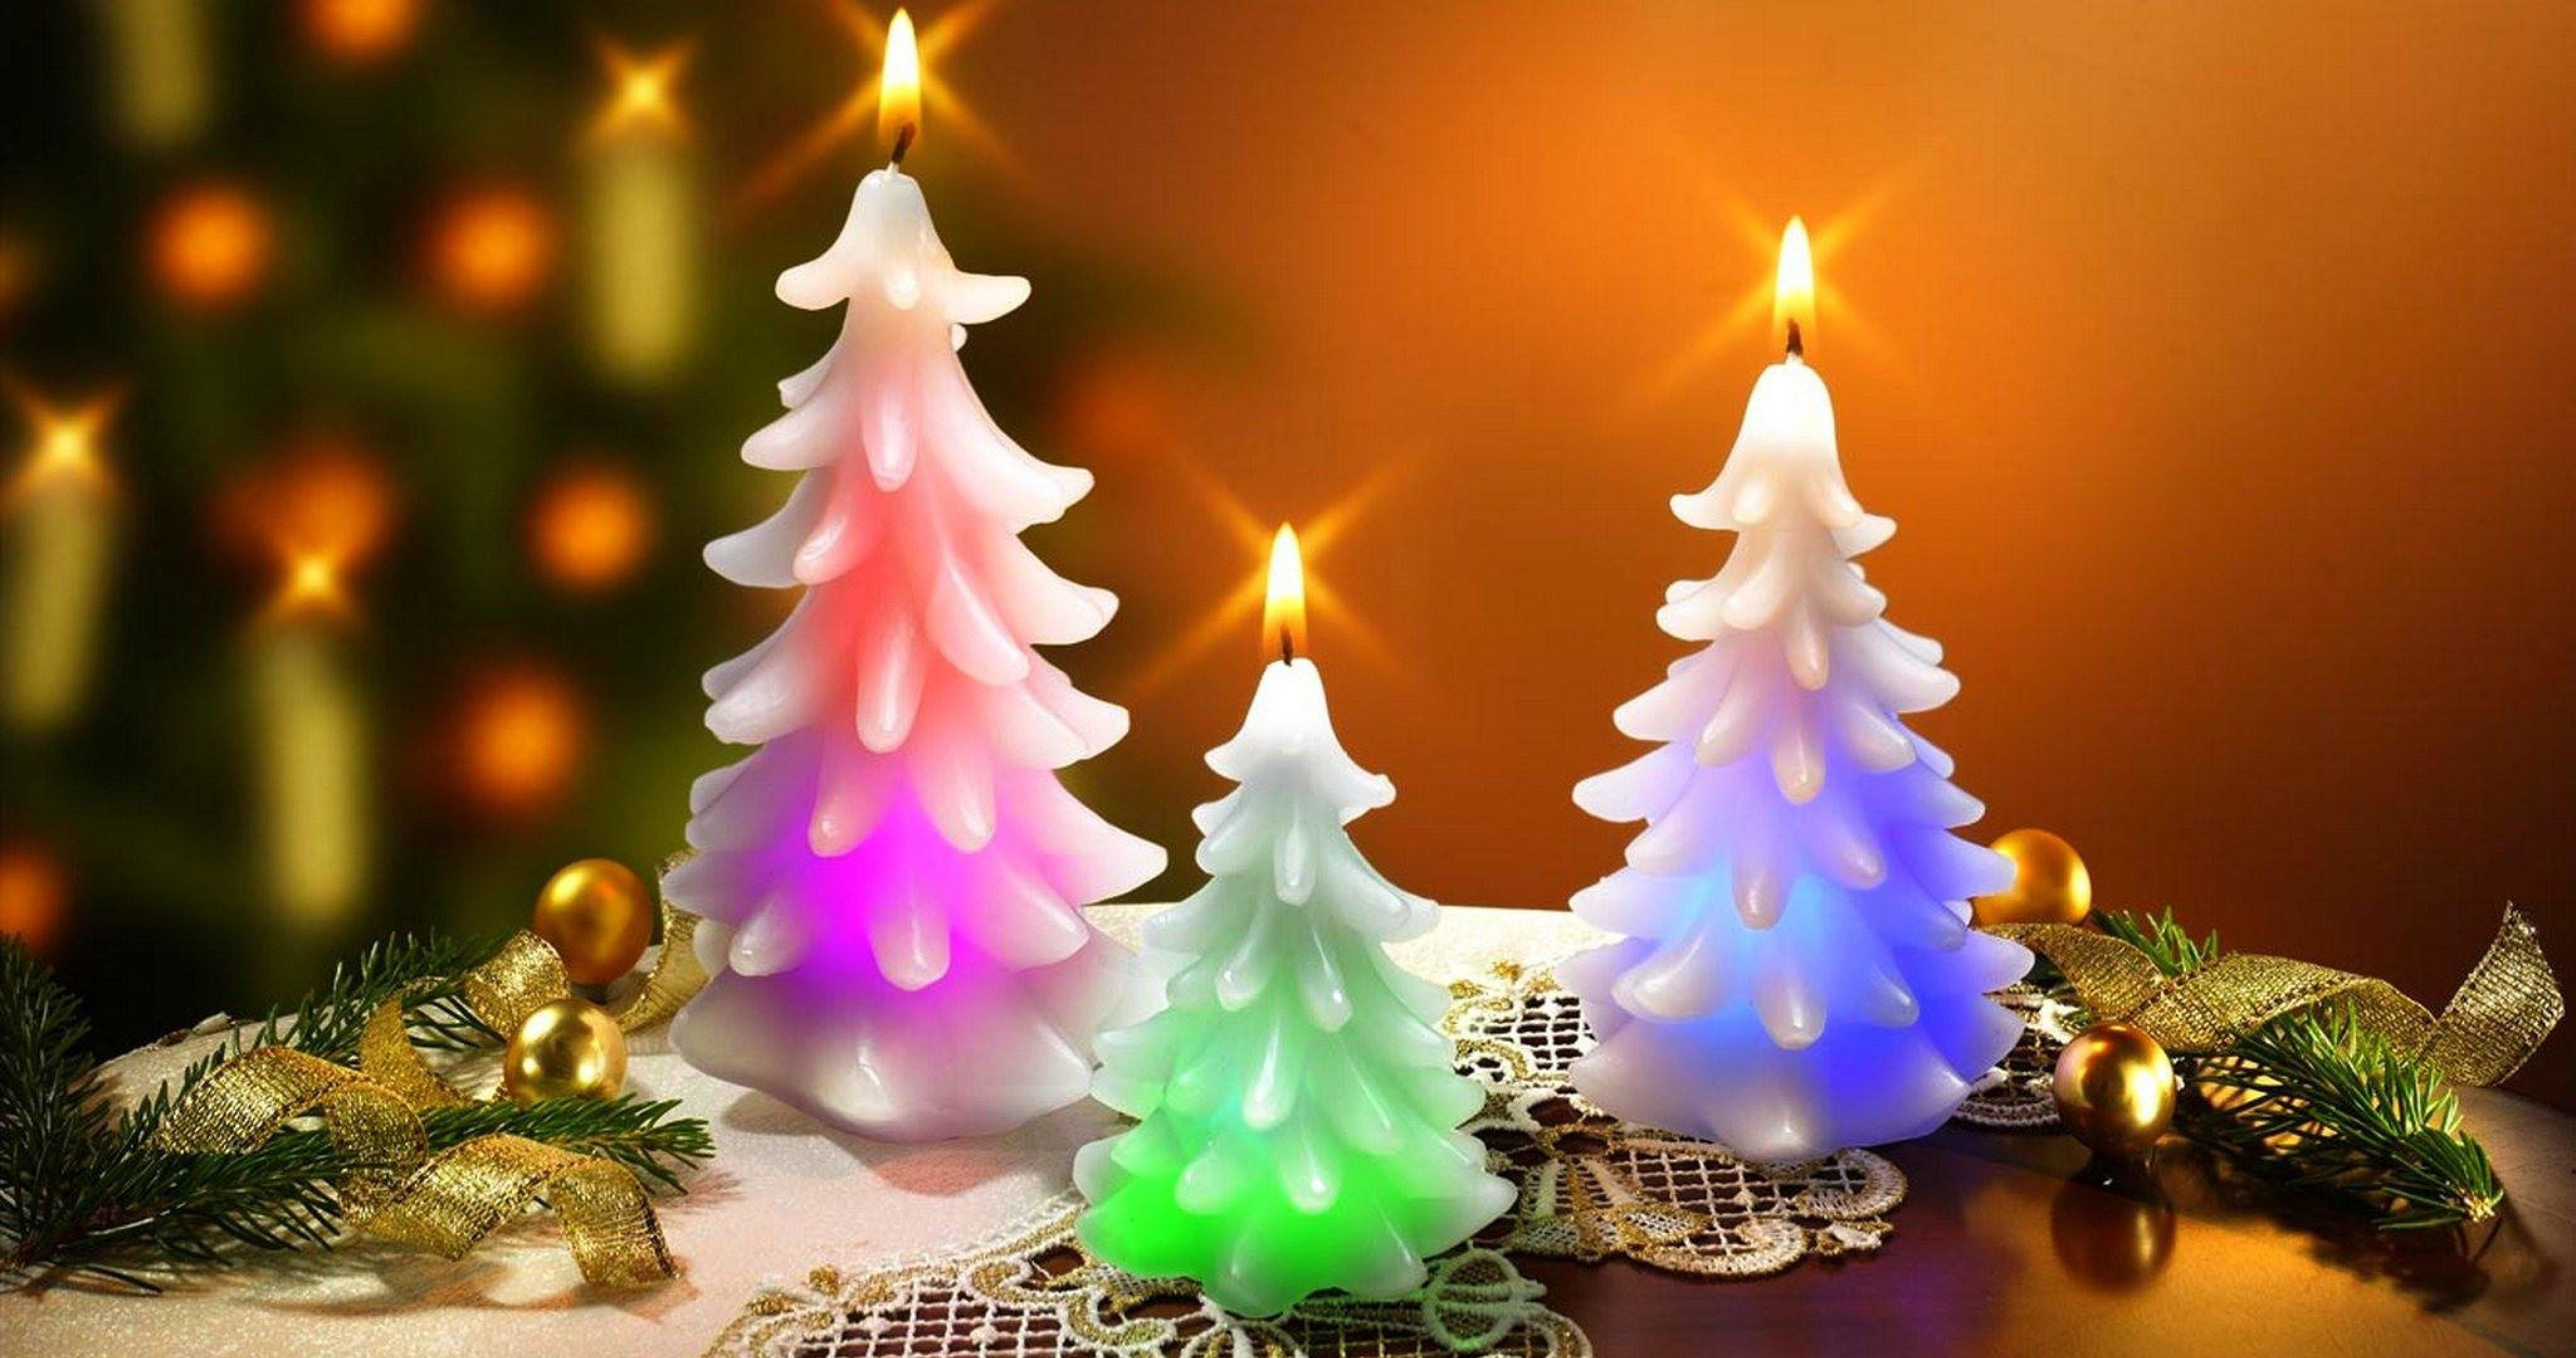 New Year Christmas Candle 4k Ultra Hd Wallpaper Candles Wallpaper Christmas Tree Candles Candles